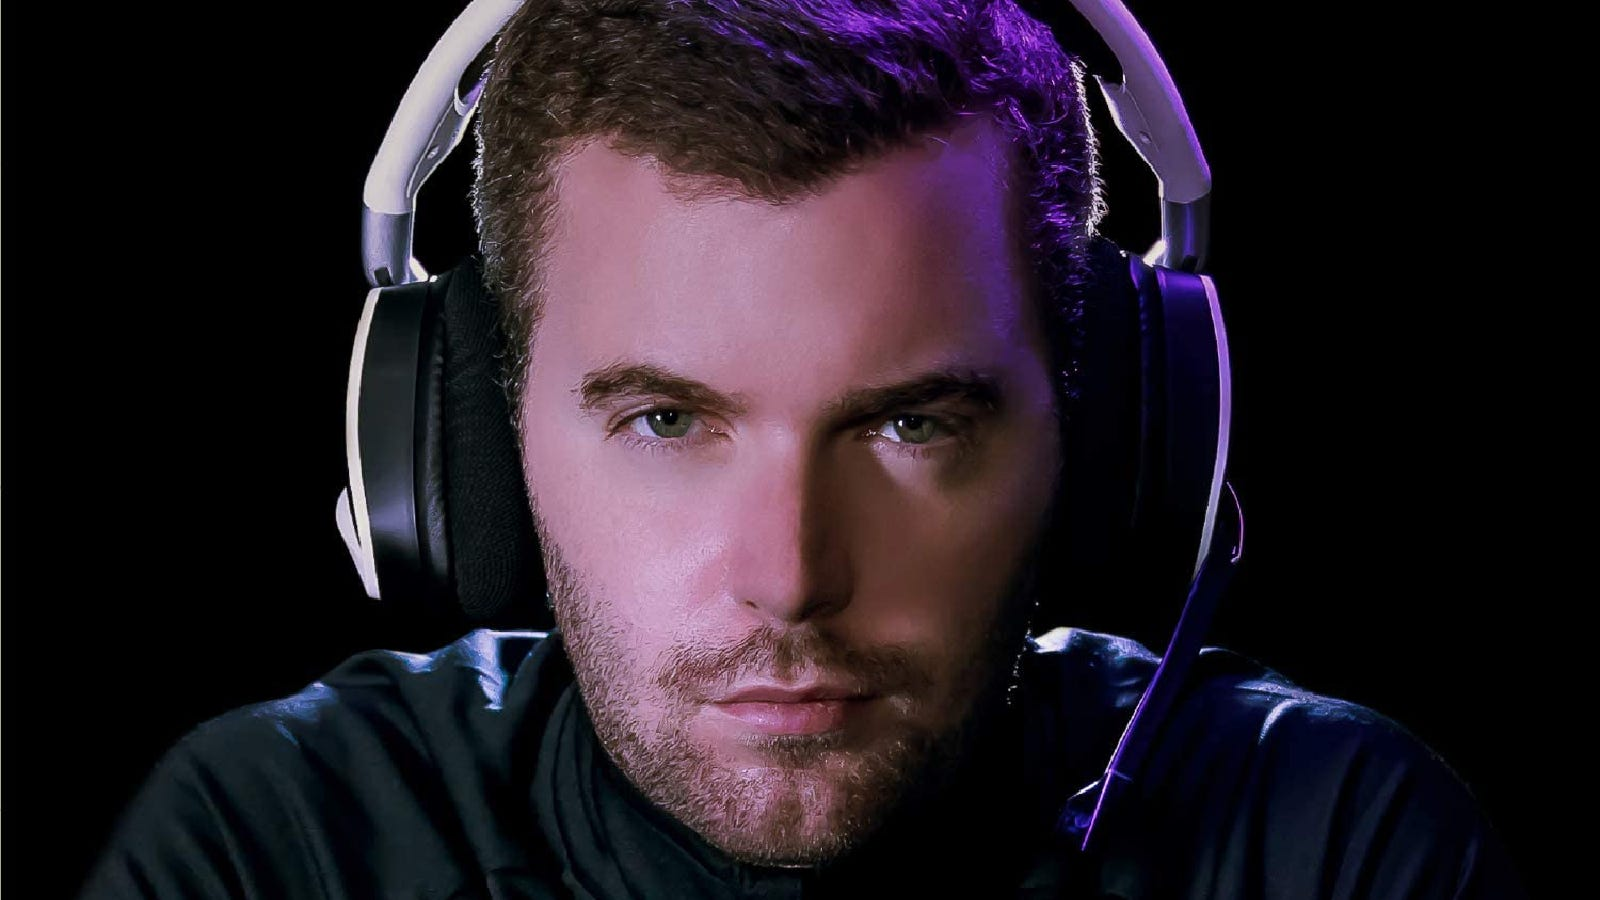 A man wears a gaming headset with a microphone in a dark room.